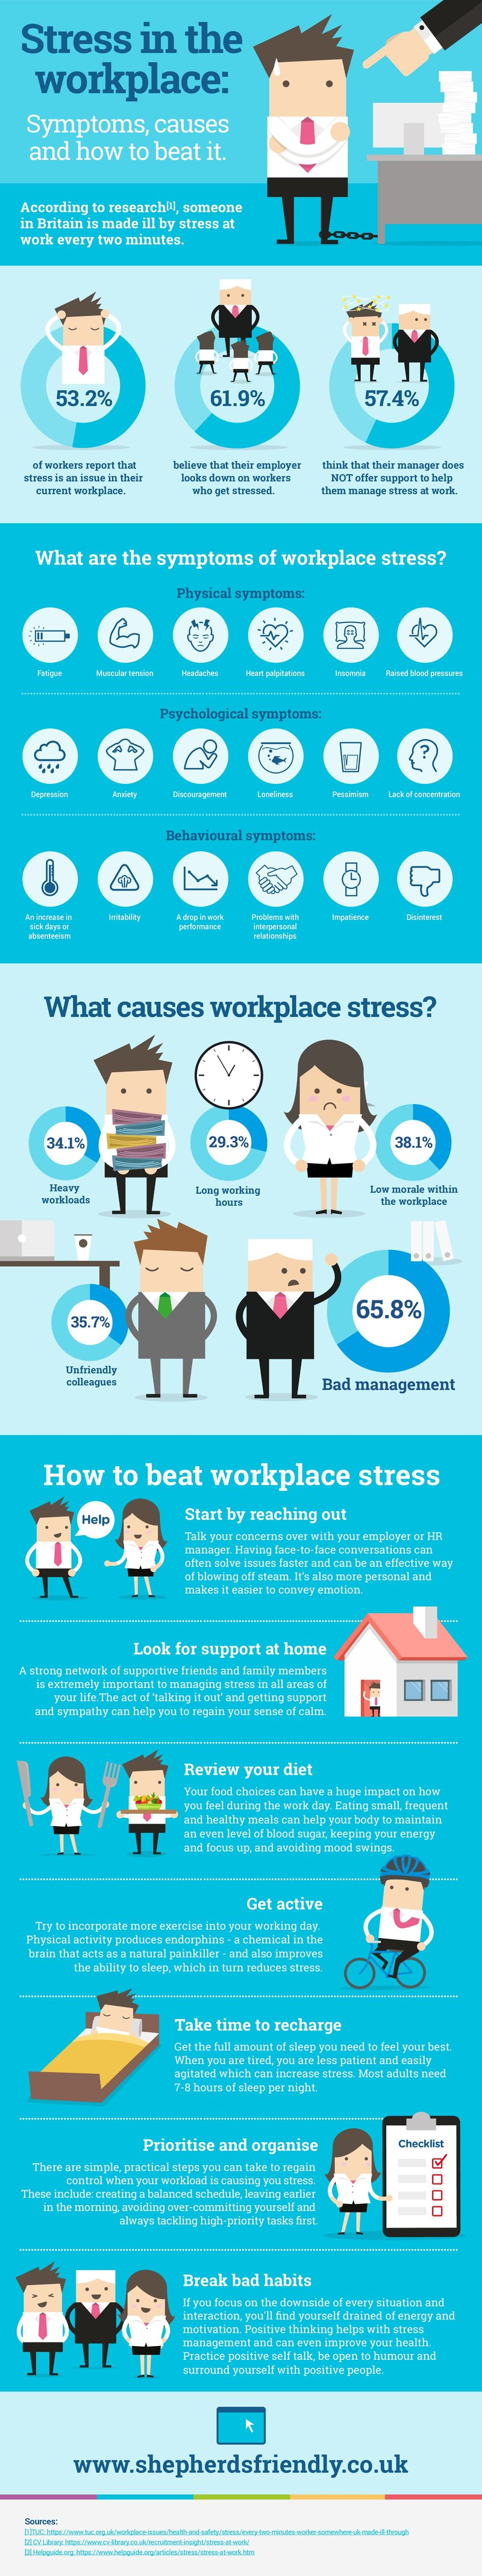 Stress at Work: Symptoms, Causes and How to Beat It